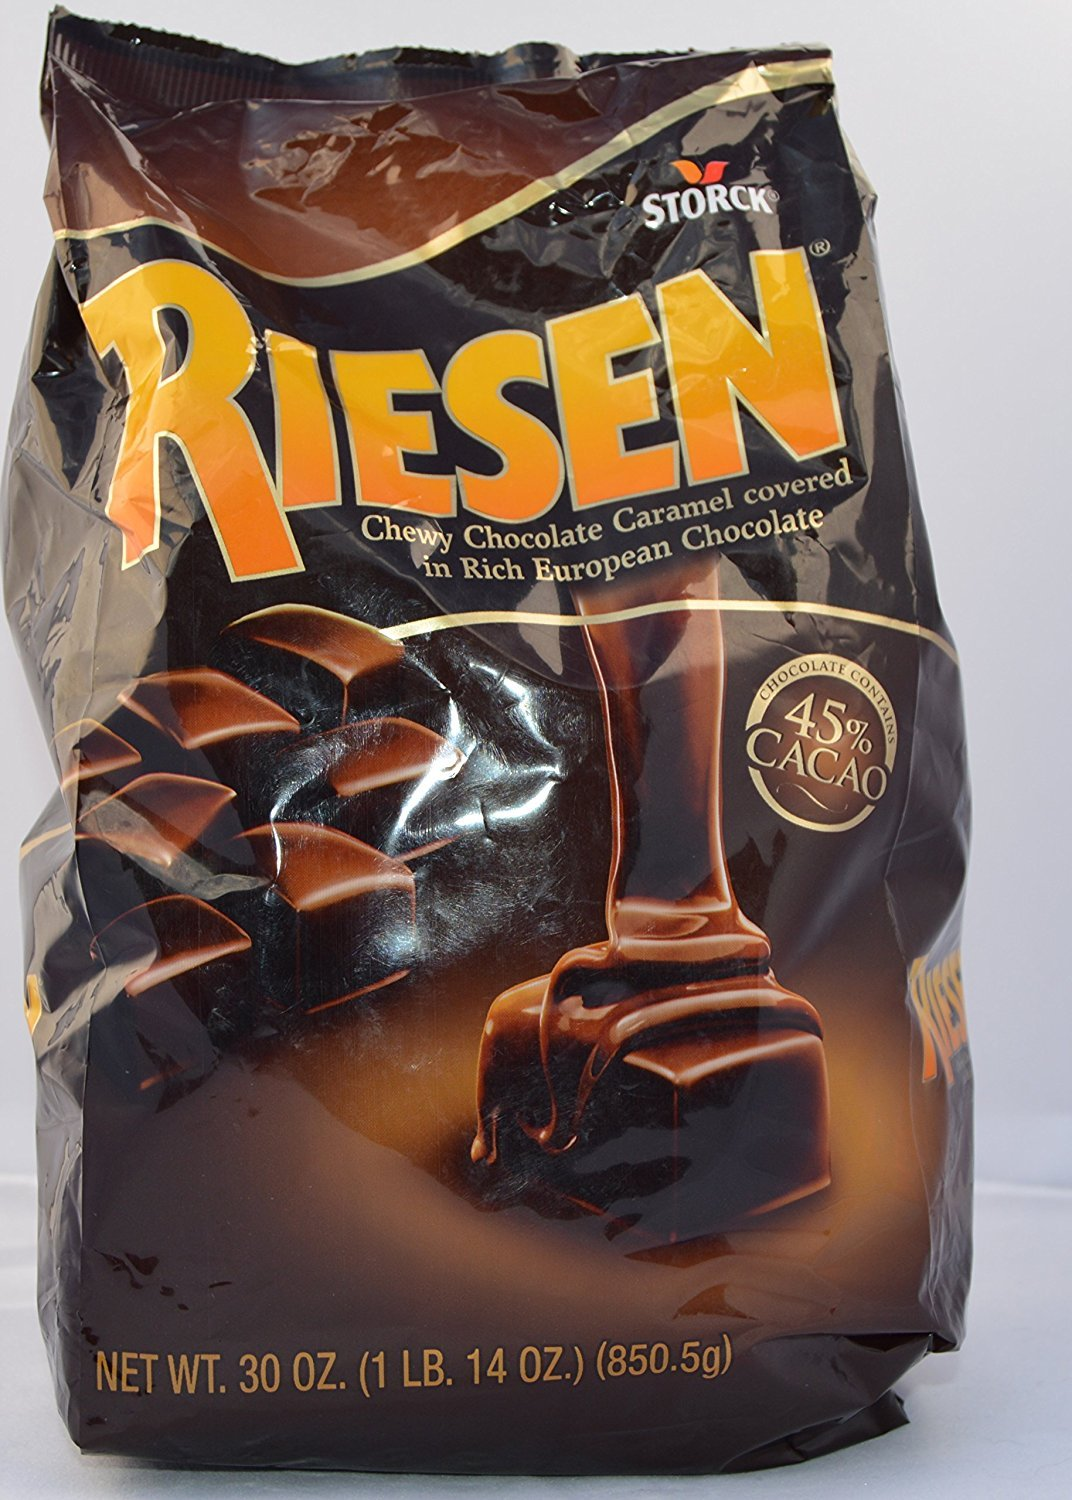 Riesen Chewy Chocolate Caramel Covered in Rich European Chocolate, 30 Oz (2 Count) by Riesen